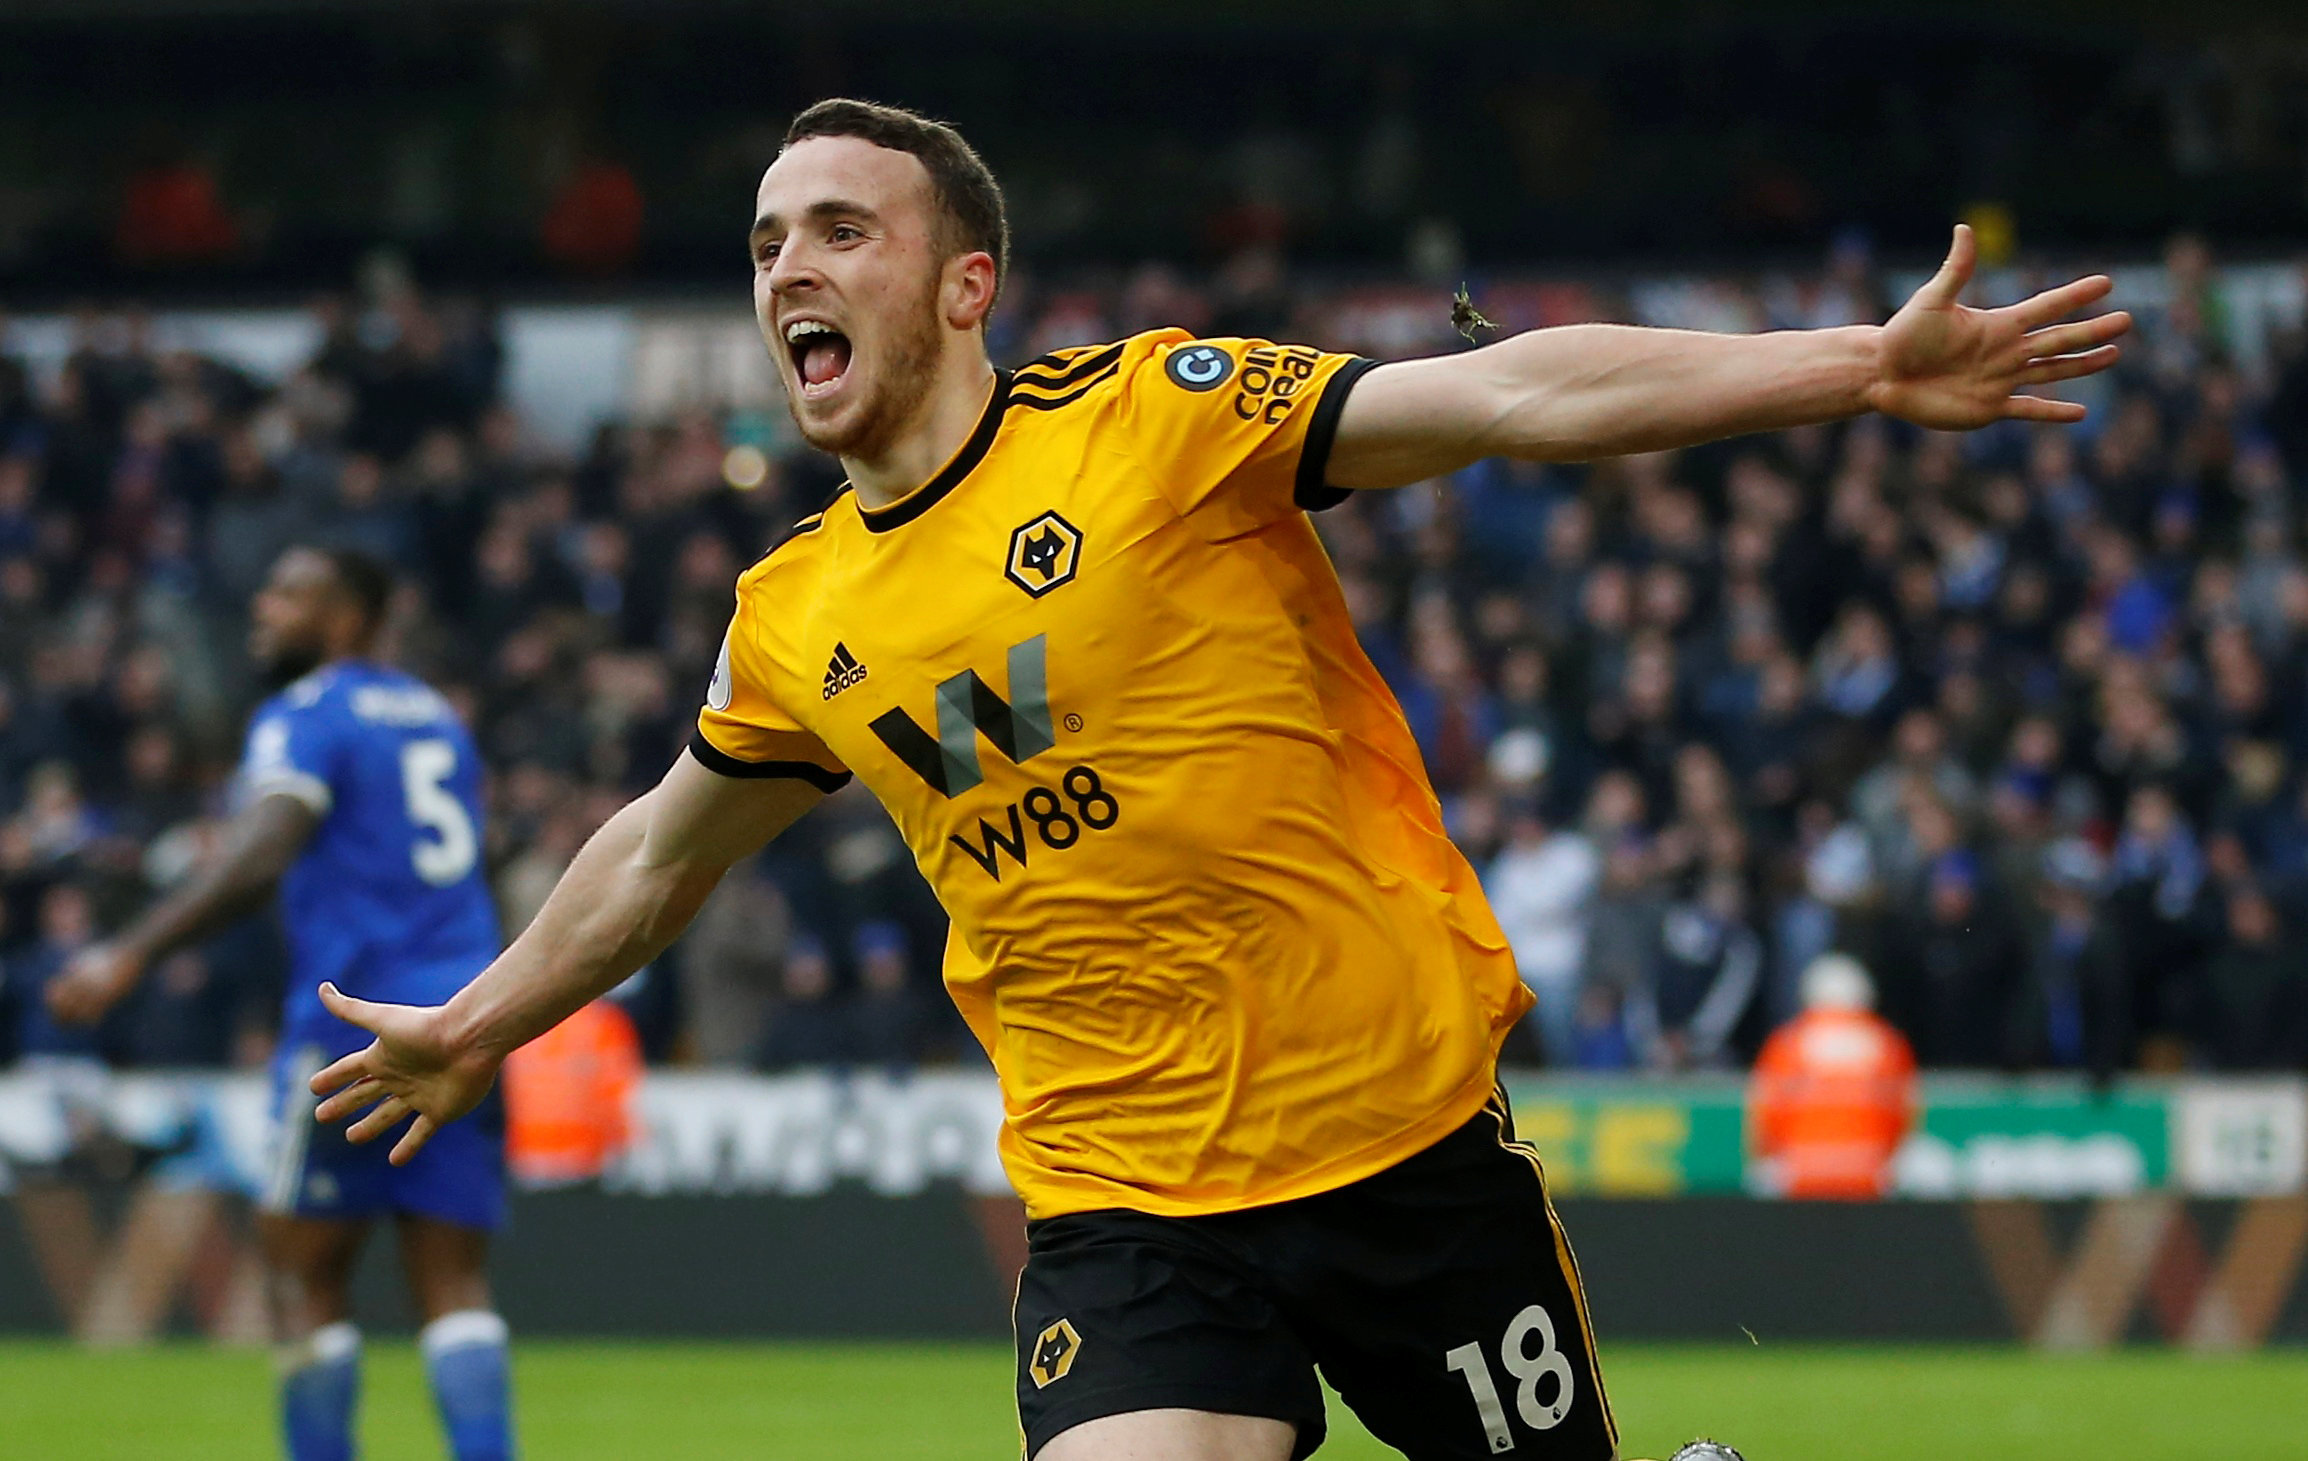 Soccer Football - Premier League - Wolverhampton Wanderers v Leicester City - Molineux Stadium, Wolverhampton, Britain - January 19, 2019  Wolverhampton Wanderers' Diogo Jota celebrates scoring their fourth goal to complete his hat-trick. Photo: Reuters